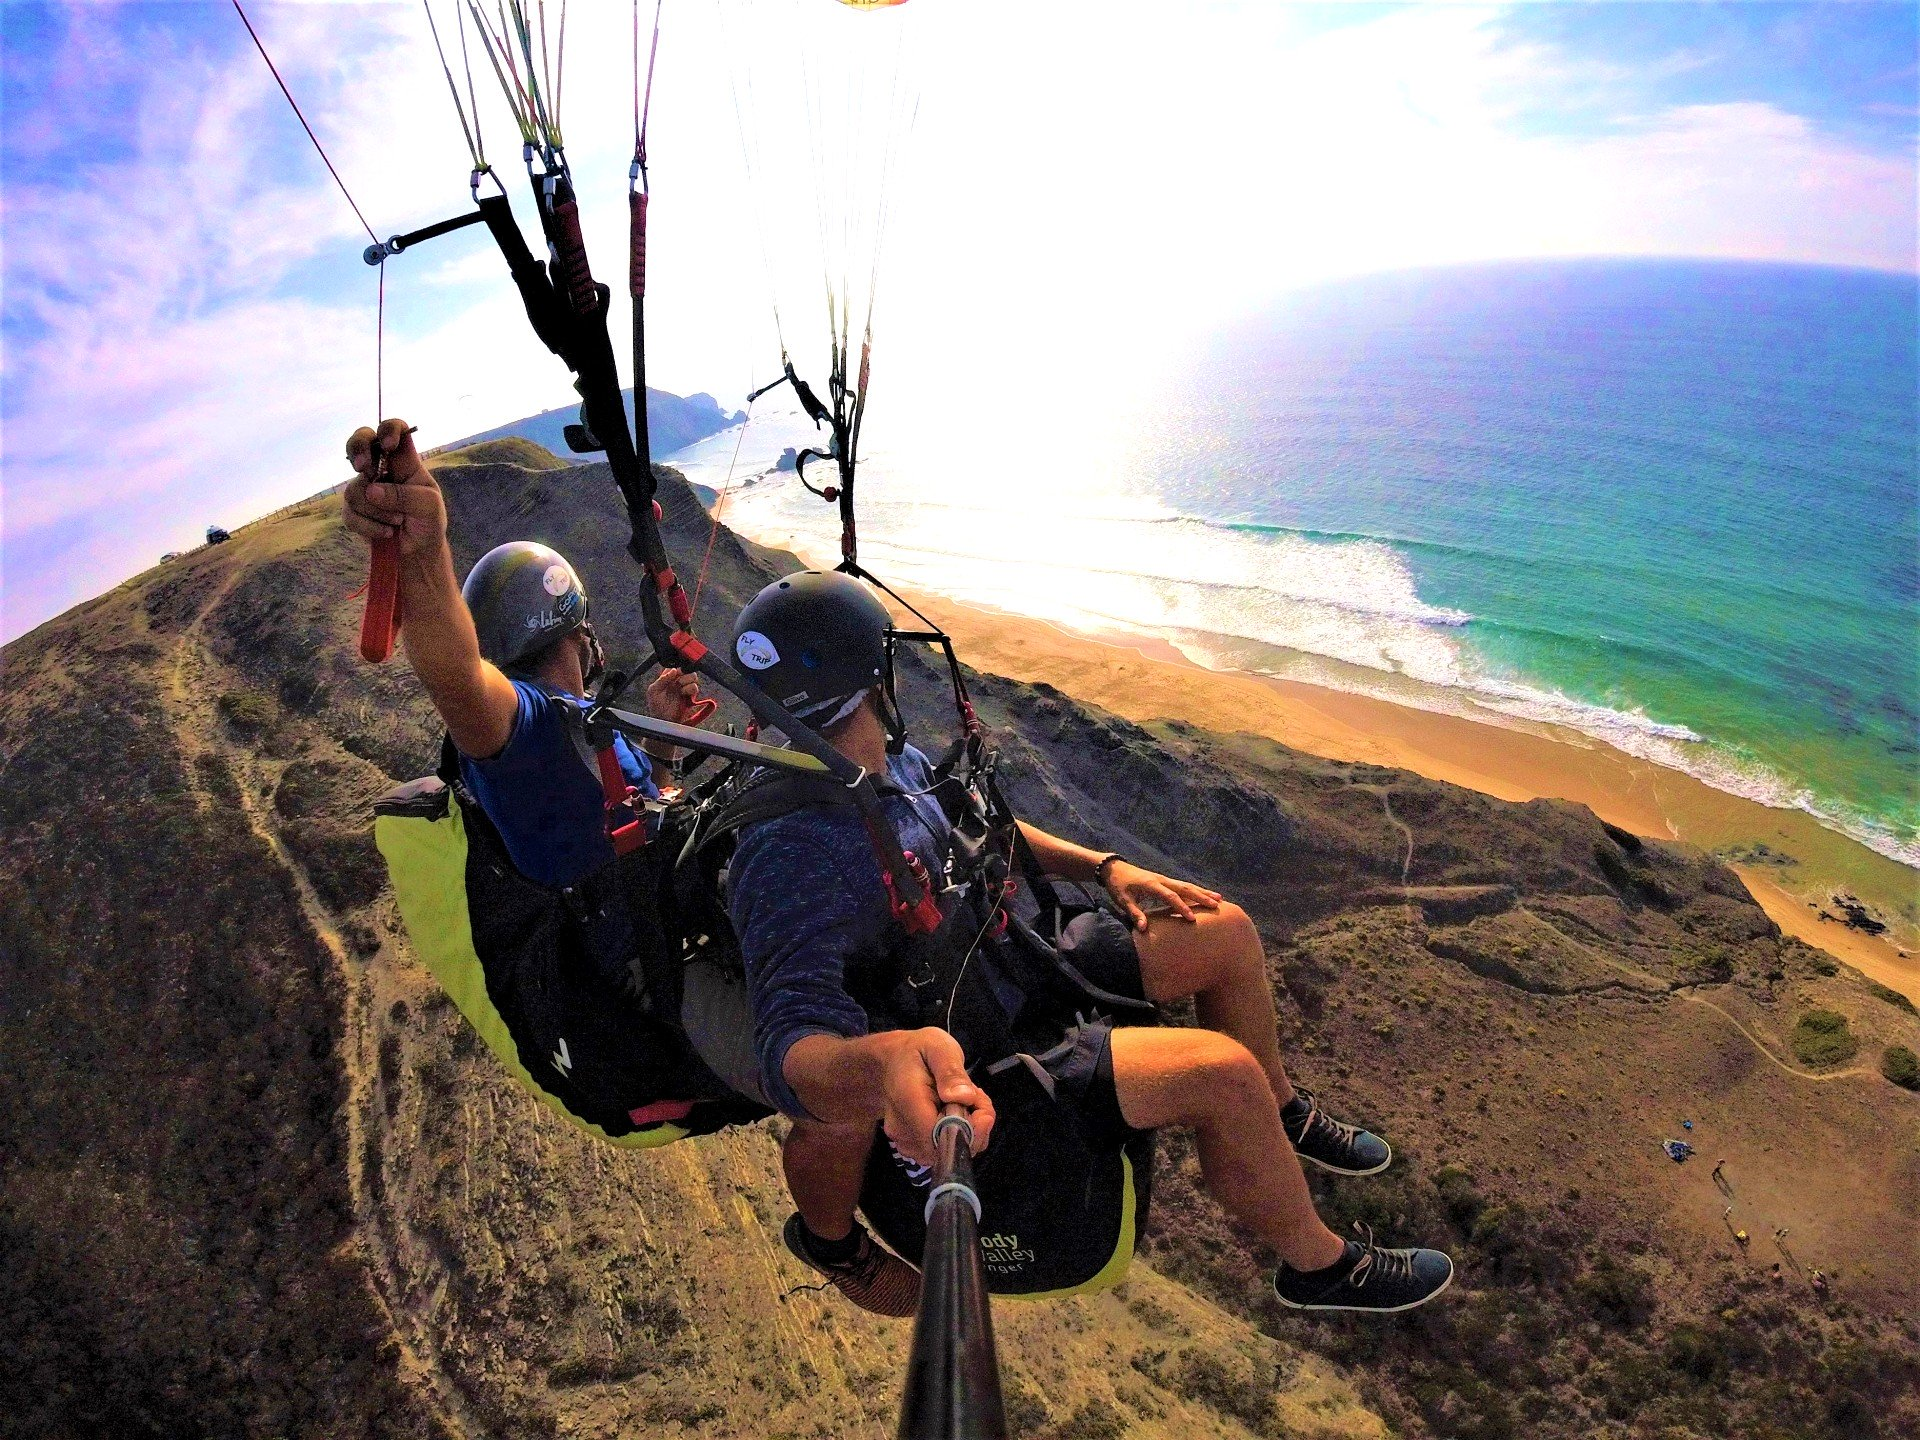 During a paragliding flight in the Algarve, the participant makes a selfie where you see him, the pilot and the coast of Portugal.